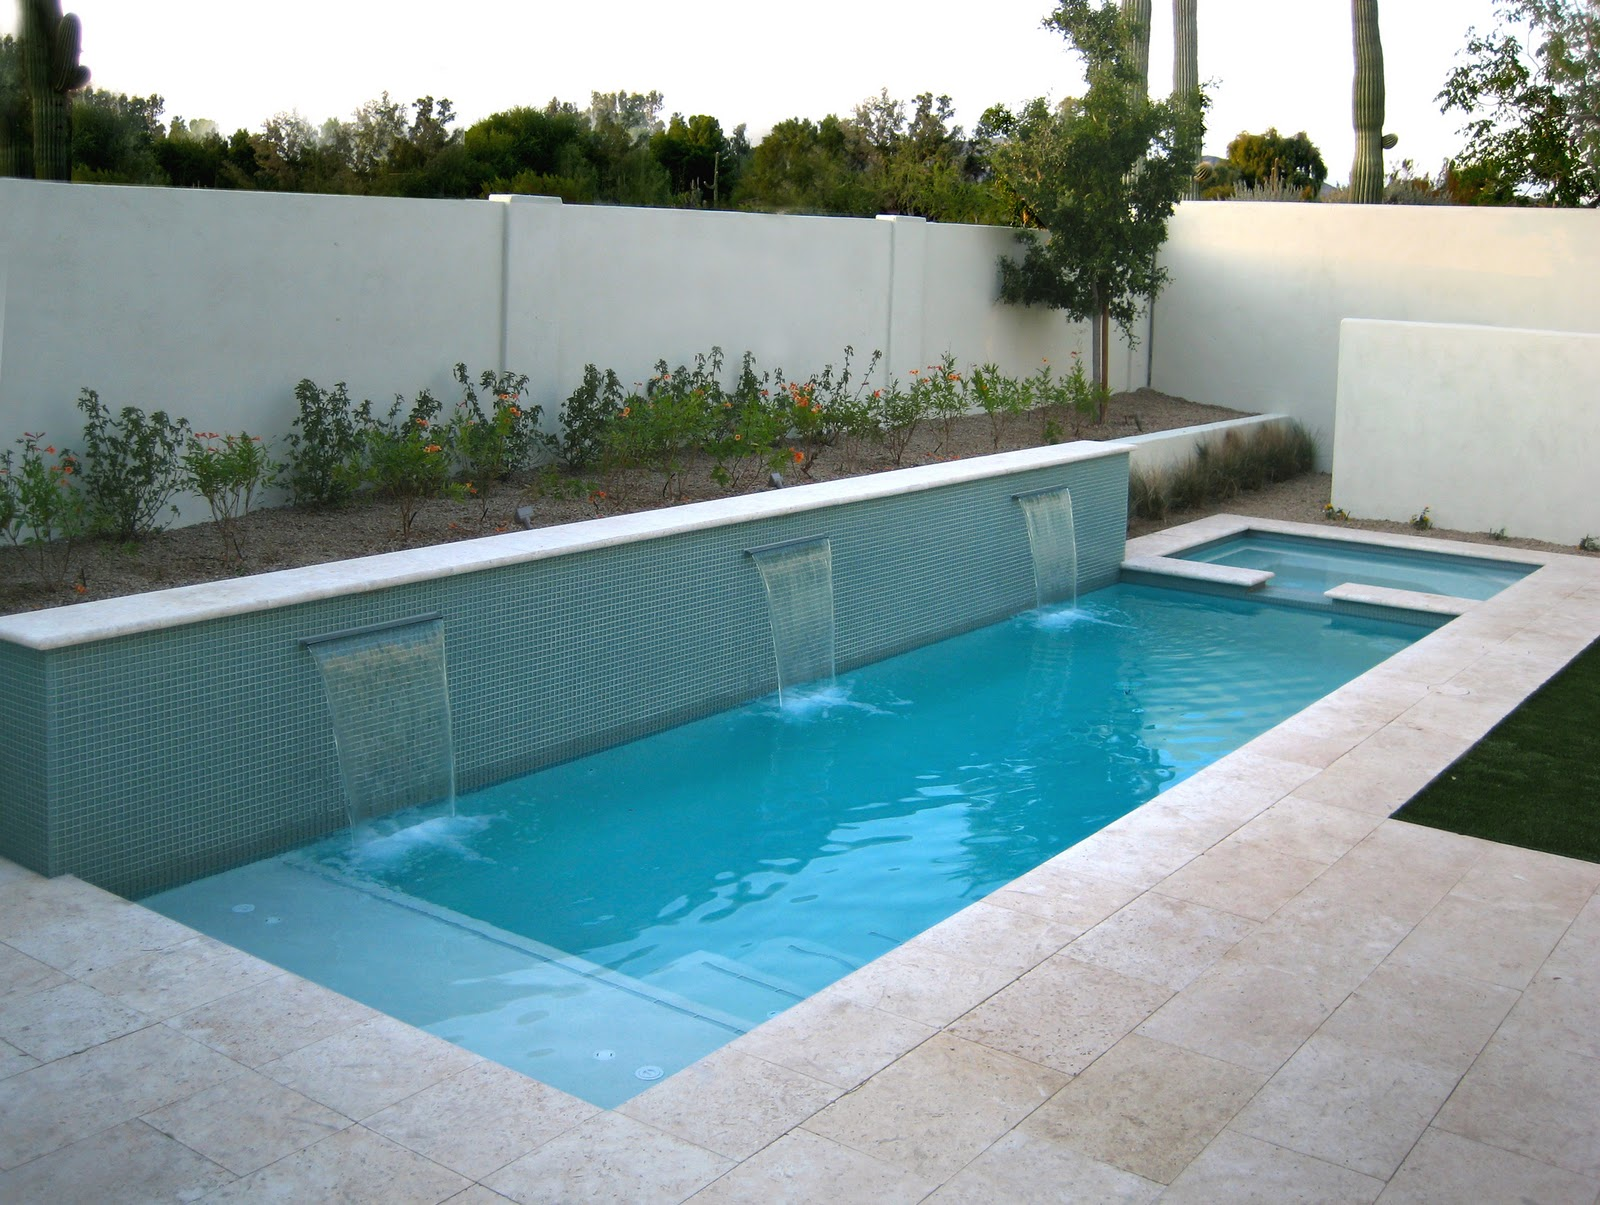 25 fabulous small backyard designs with swimming pool small backyard design pools and small - Swimming pool designs small yards ...